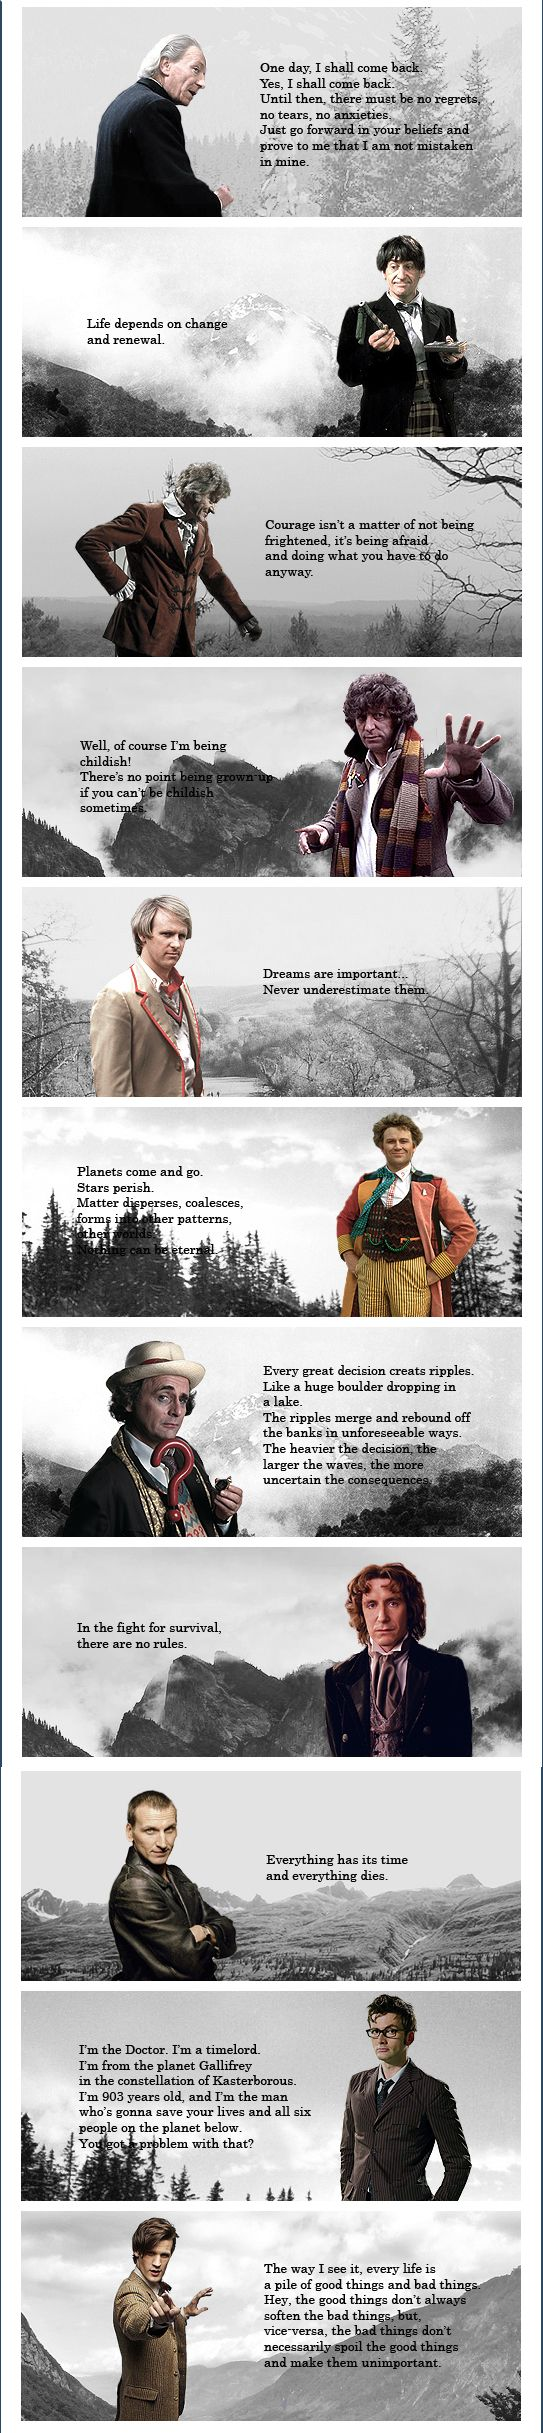 The Doctor ^^ I'll need to find 6's quote; I'm having trouble reading it.